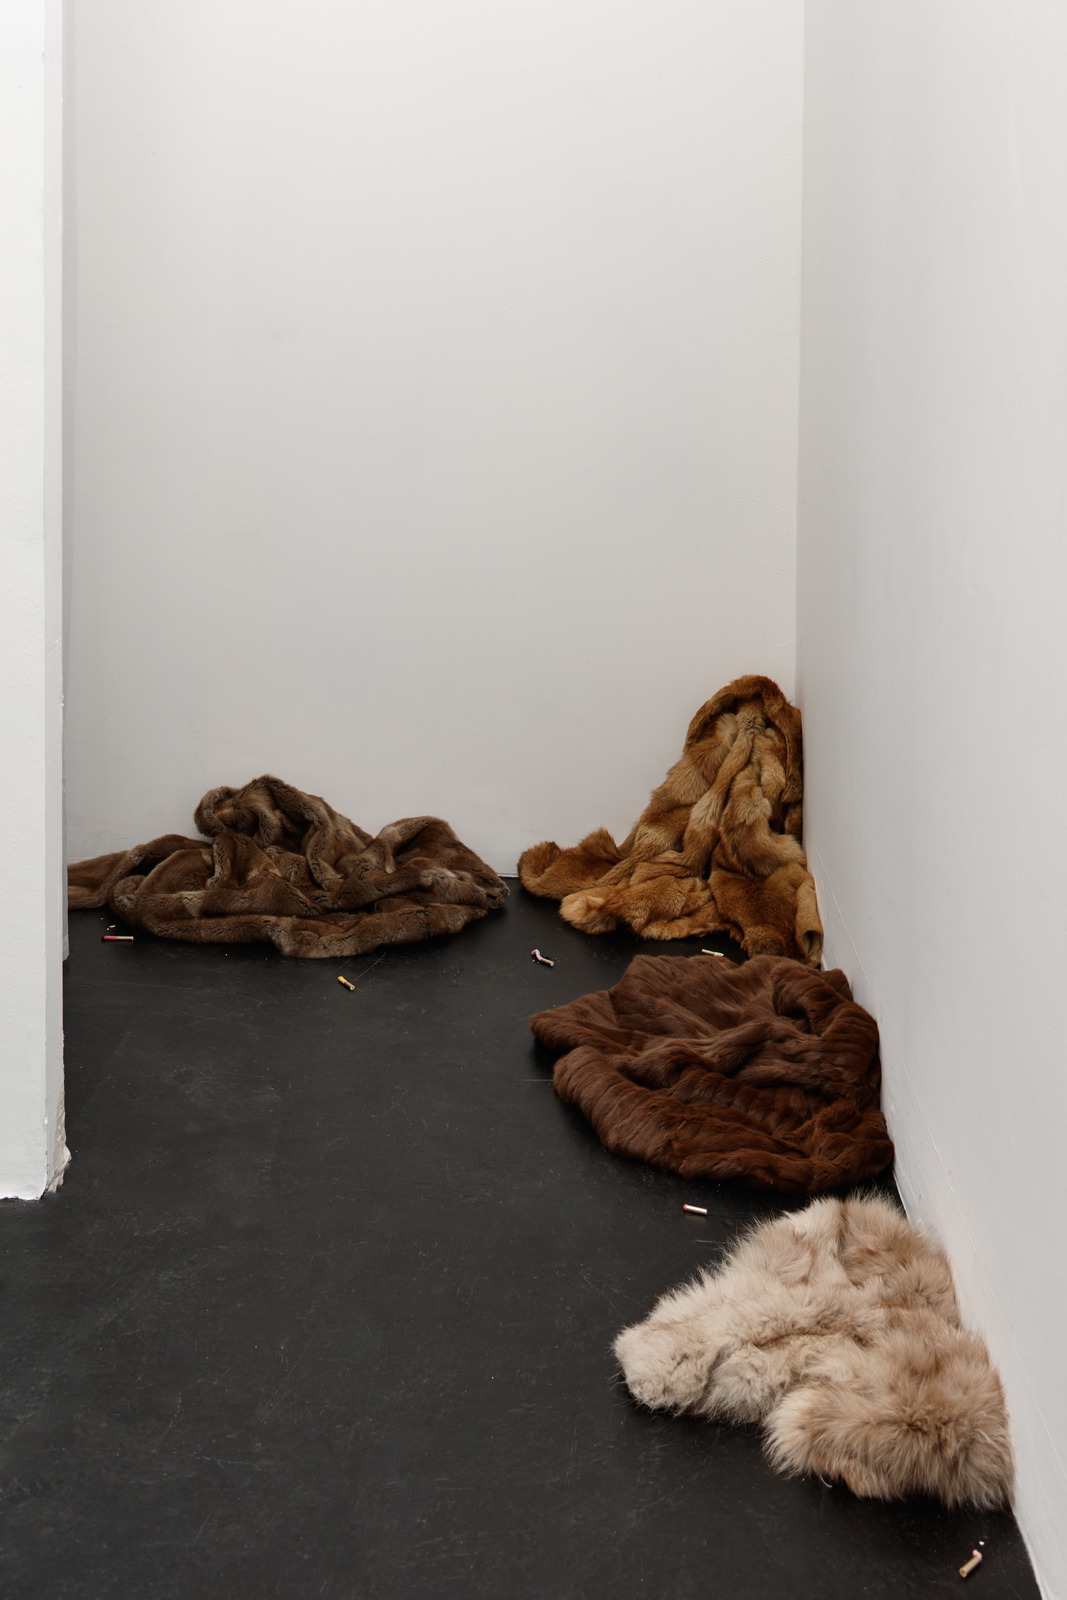 Zoe Williams - Pel remnants (Smoking in Furs), 2016